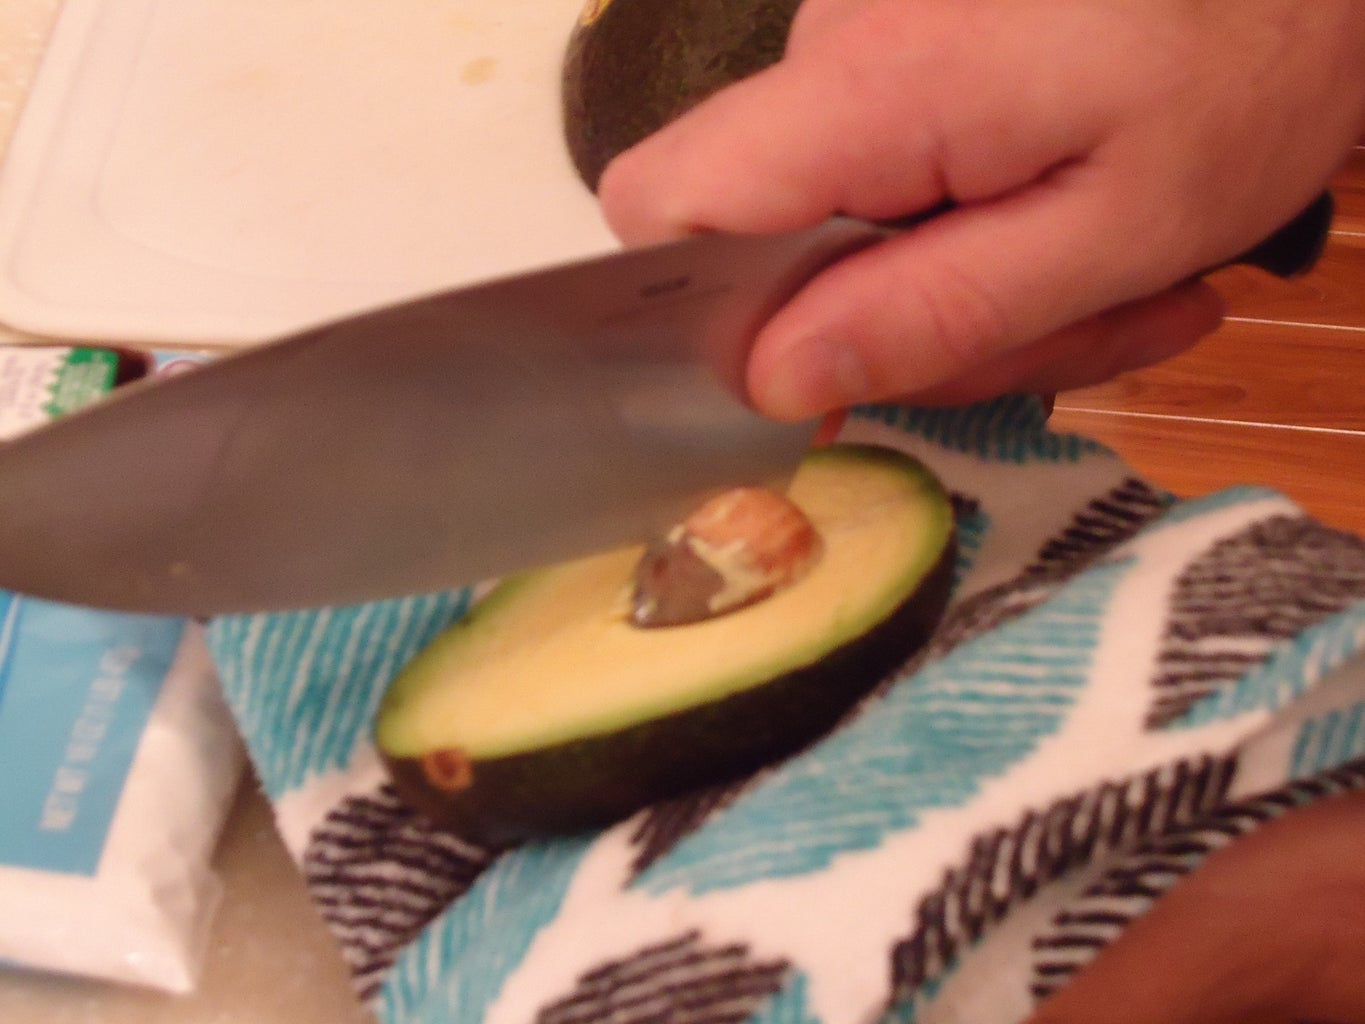 How to Dissect an Avocado